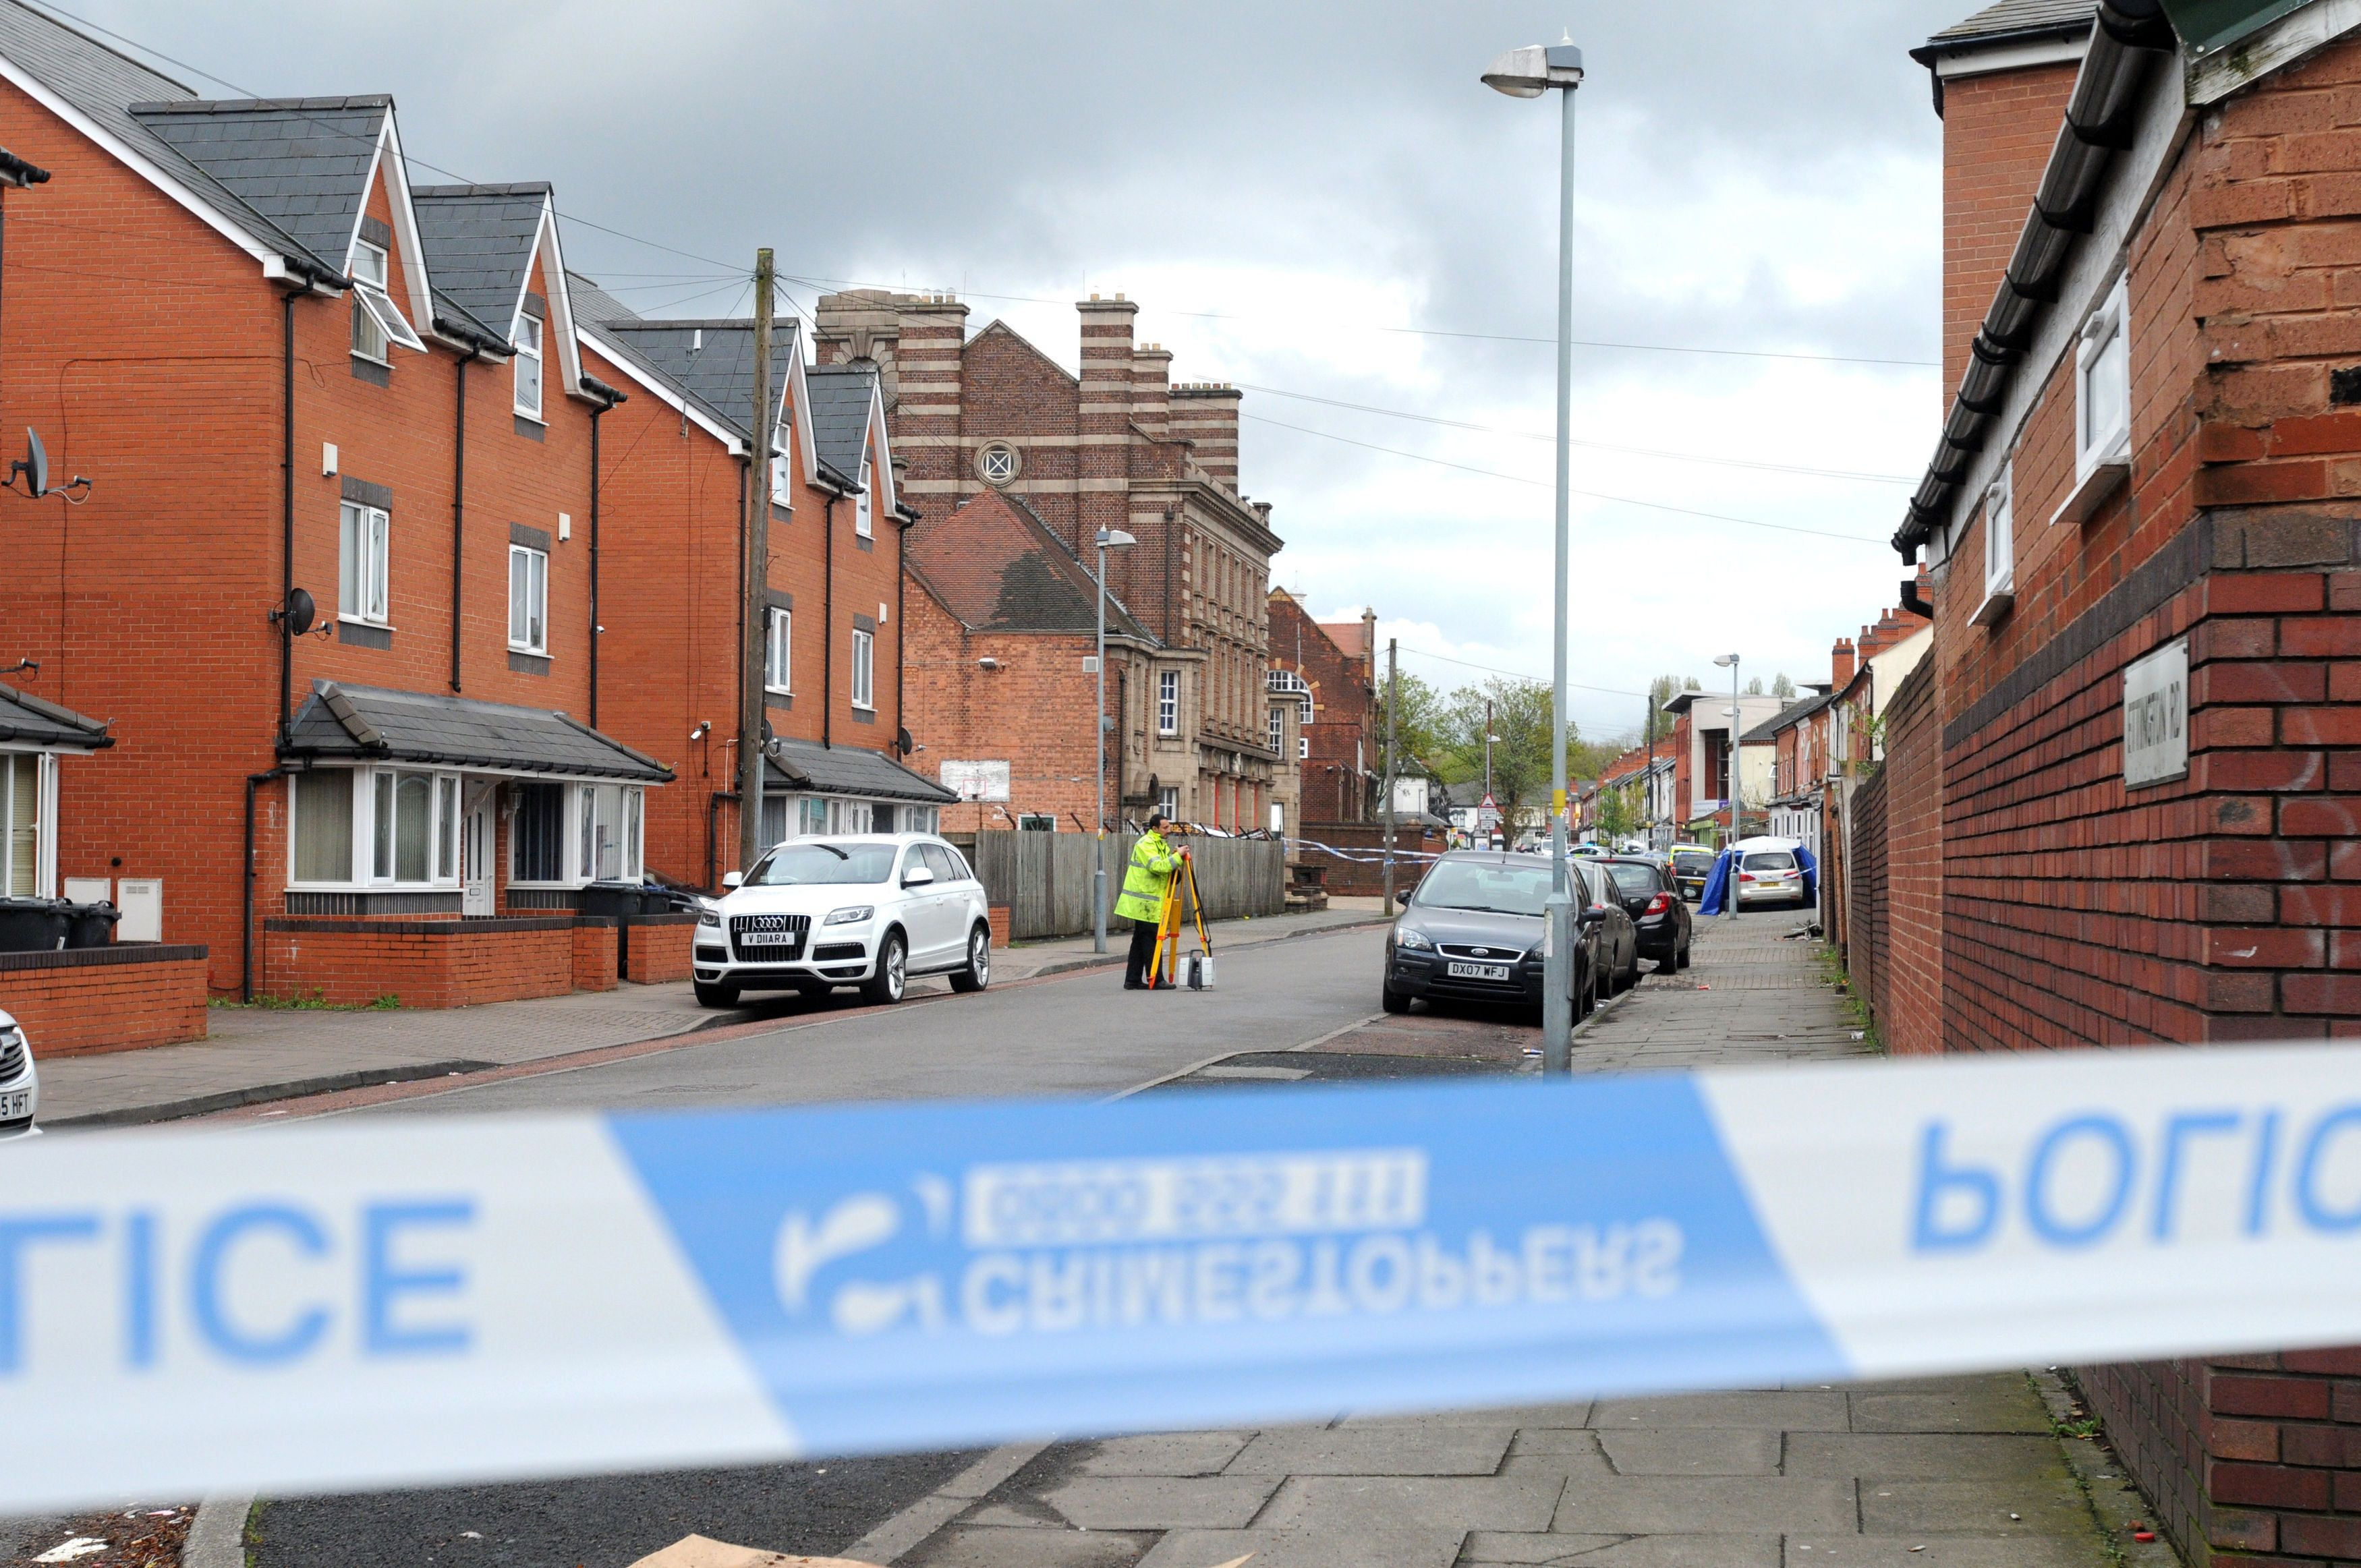 Ettington Road in Aston, Birmingham where Friday's incident took place.